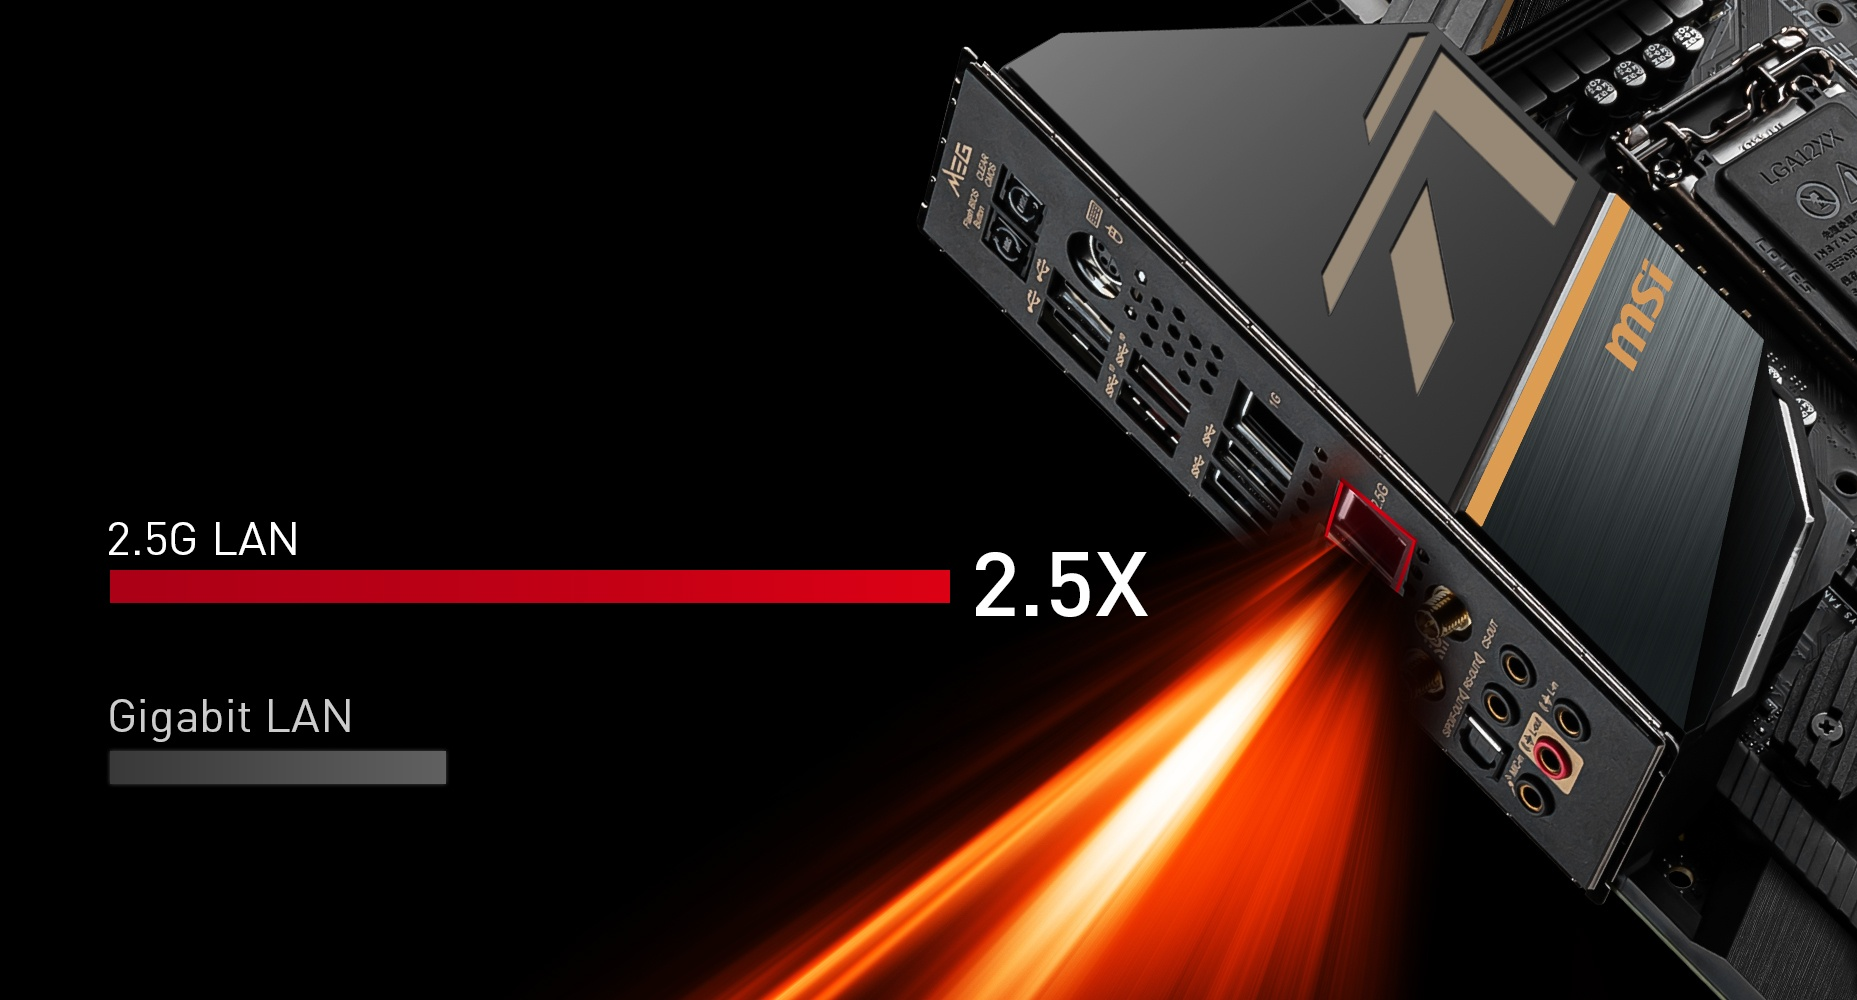 MSI MEG Z490 ACE DUAL LAN WITH 2.5G LAN